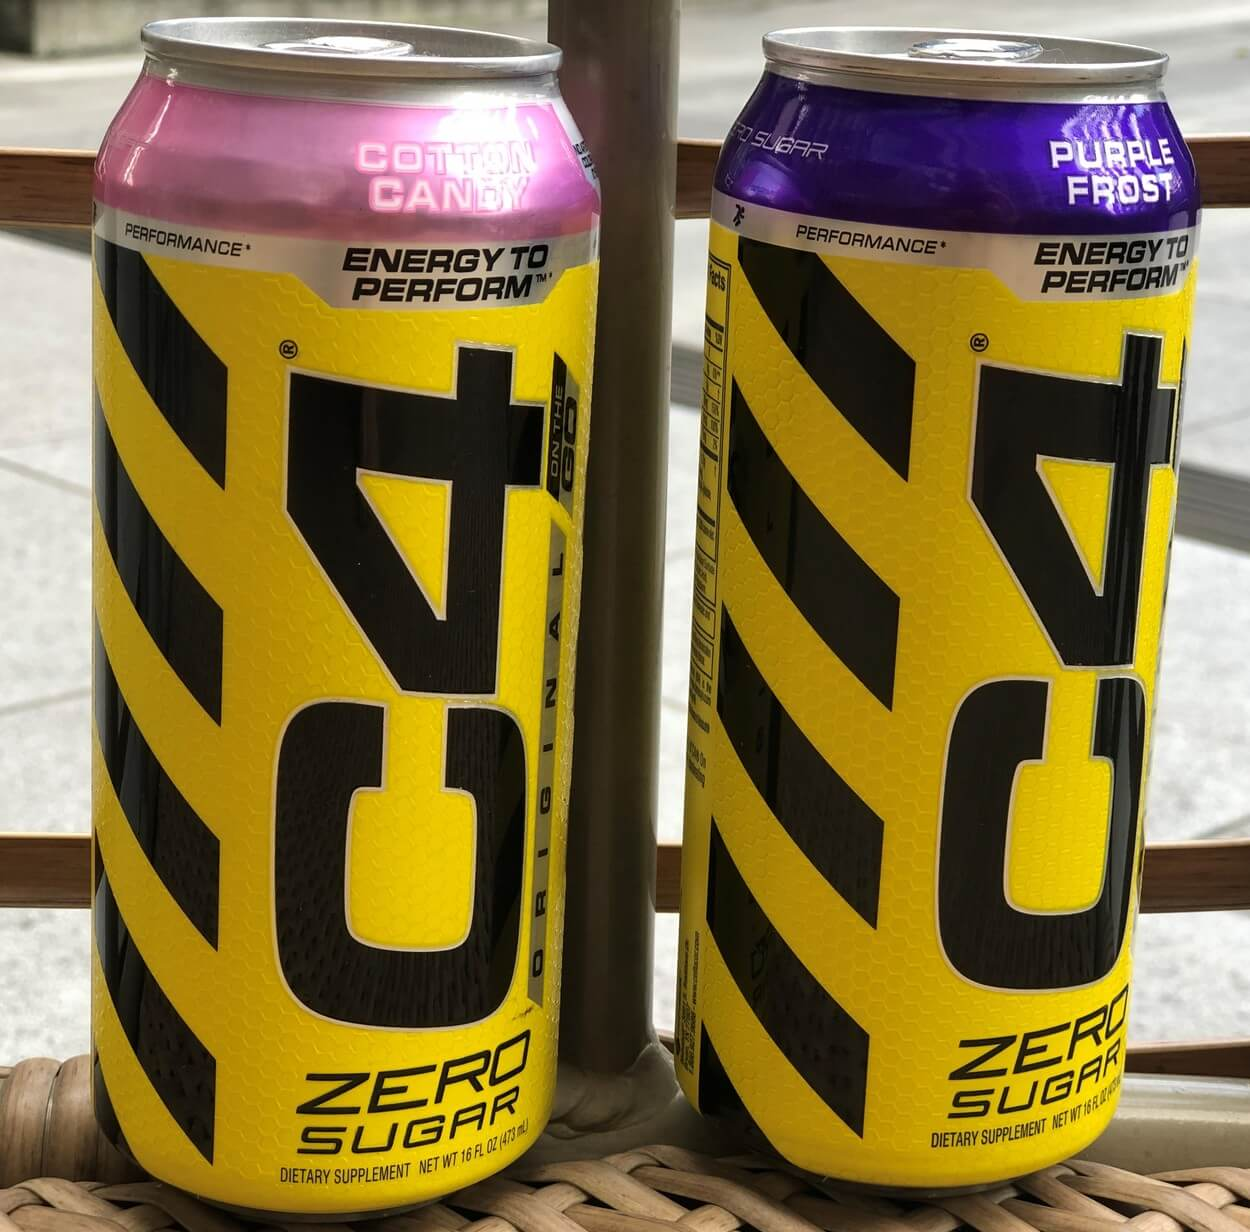 Two cans of C4 Energy drinks beside each other.